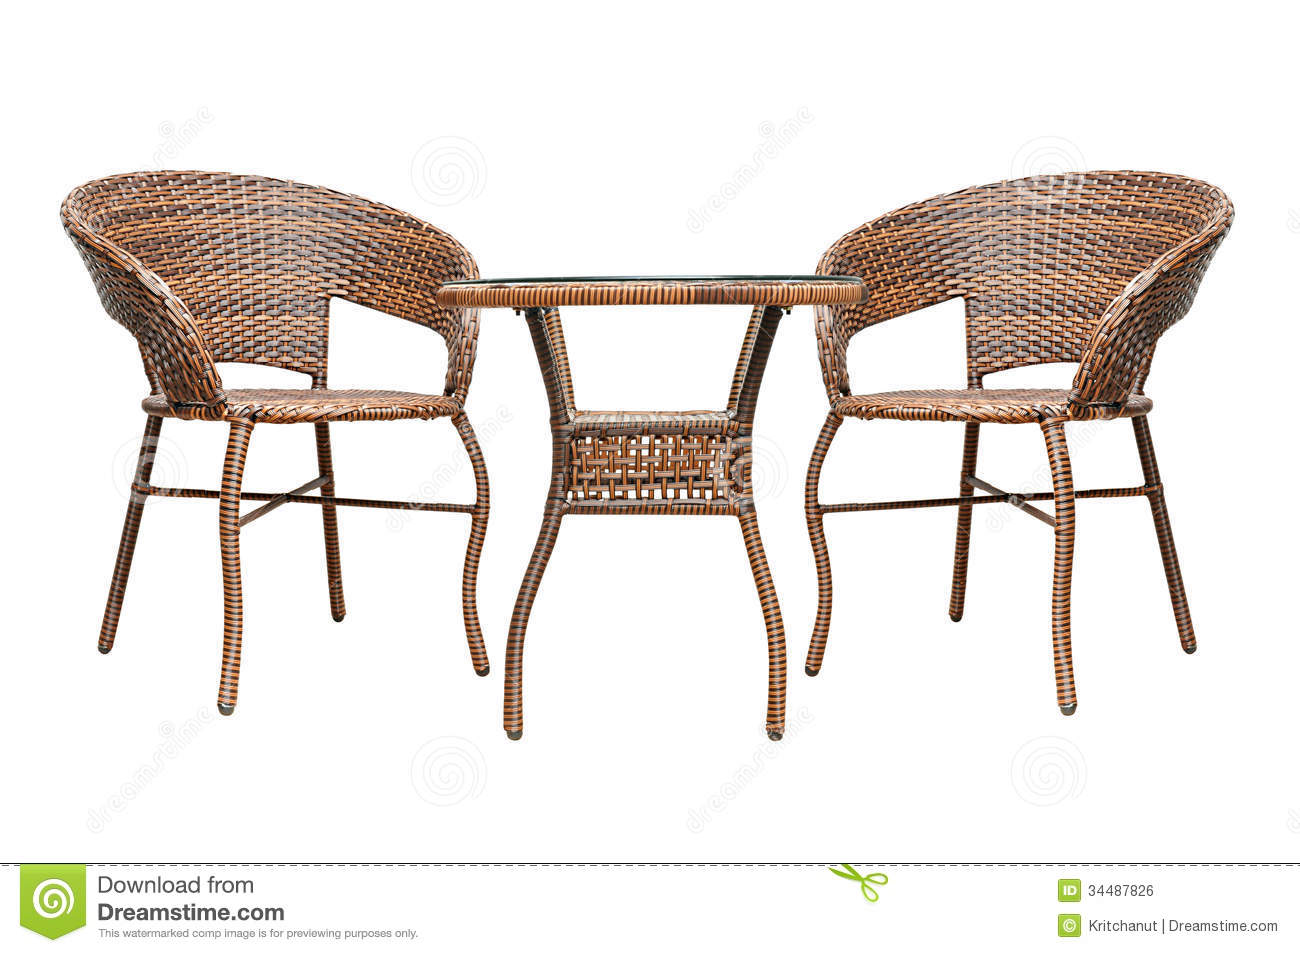 Rattan coffee table set stock photo Image of exotic  : rattan coffee table set beautiful chairs as white background 34487826 from www.dreamstime.com size 1300 x 953 jpeg 149kB